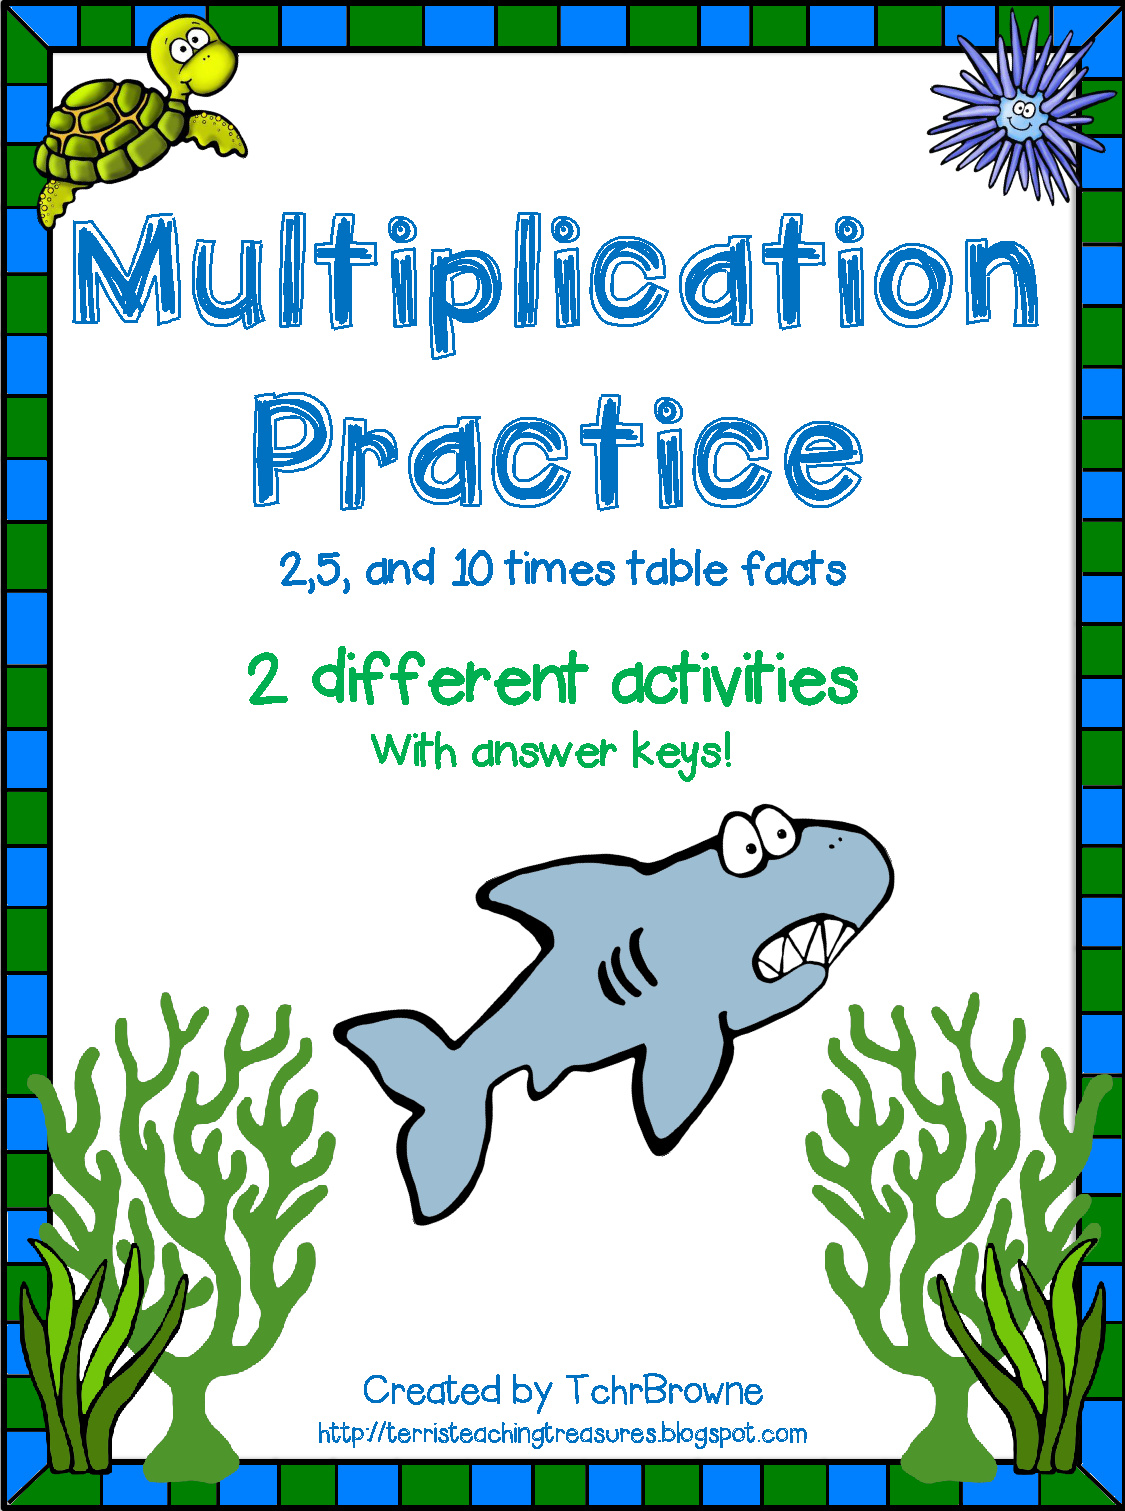 http://www.teacherspayteachers.com/Product/Multiplication-Practice-2510-times-tables-1335976